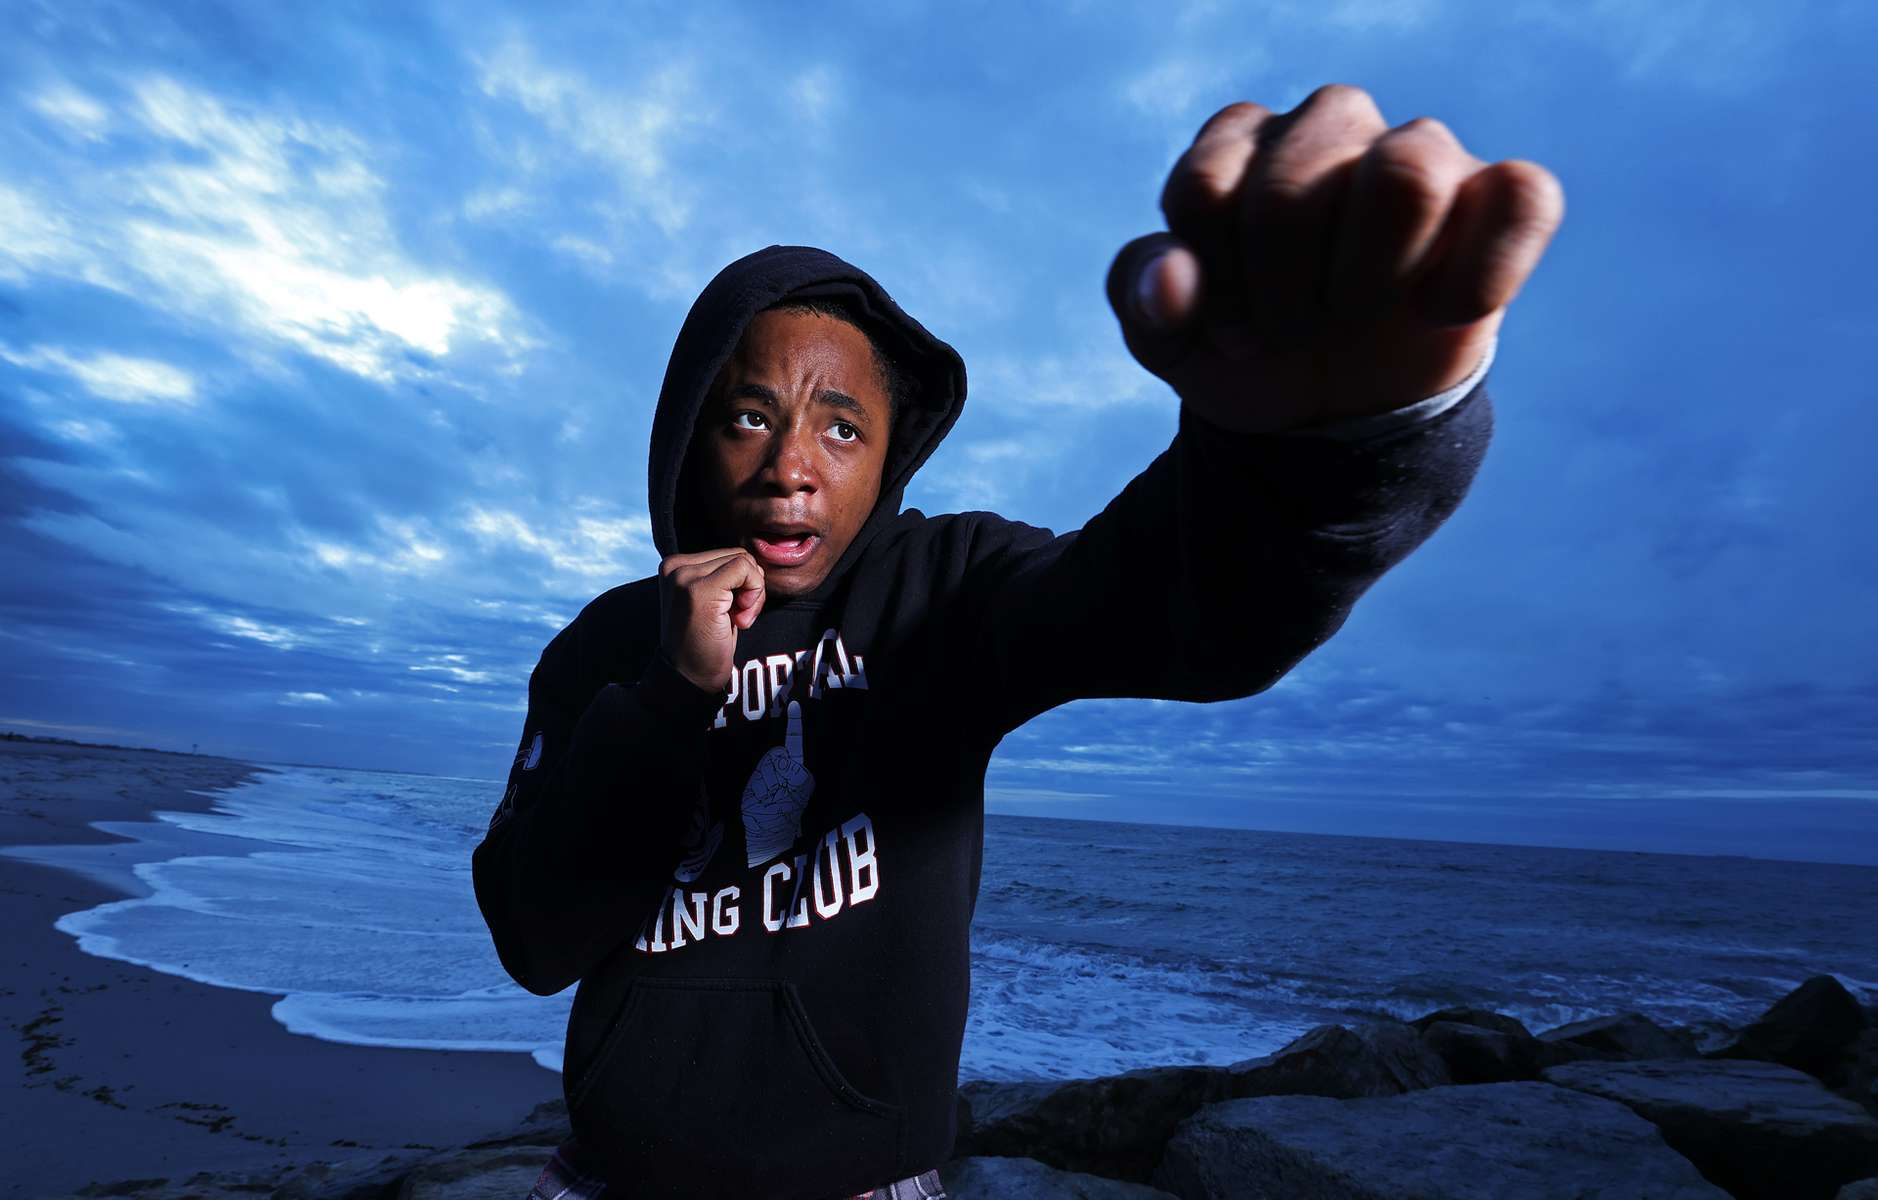 Alan Teemer Jr. shadowboxes on the beach on May 18, 2020 in Long Beach, New York.  Alan is an Amateur boxer who fought in the New York City Golden Gloves and made the Semi Finals in the Open 123lb class. He was training to compete in this year's Golden Gloves tournament but it has been cancelled due to the coronavirus pandemic.  The Gym he fights for is called the Freeport Boxing Club and has been closed by New York Governor Andrew Cuomo since March 16th due to the coronavirus COVID-19 pandemic.  Until the gyms are deemed safe to open he will continue to stay fit by training at home with the hope that he can box again later this year.